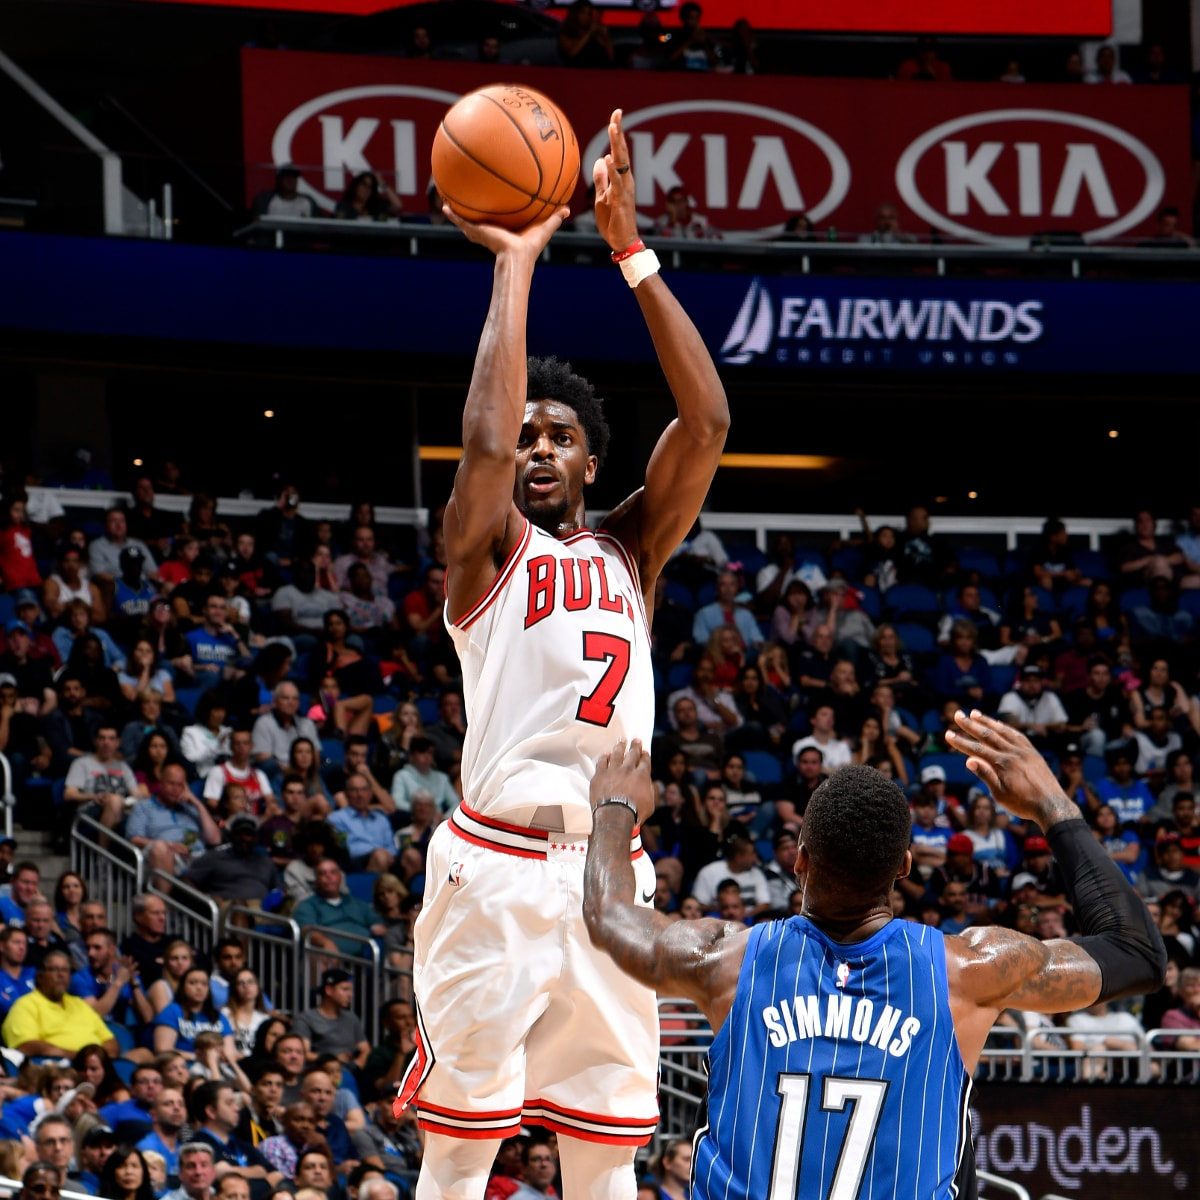 Justin Holiday #7 of the Chicago Bulls shoots the ball during the game against the Orlando Magic on November 3, 2017 at Amway Center in Orlando, Florida.